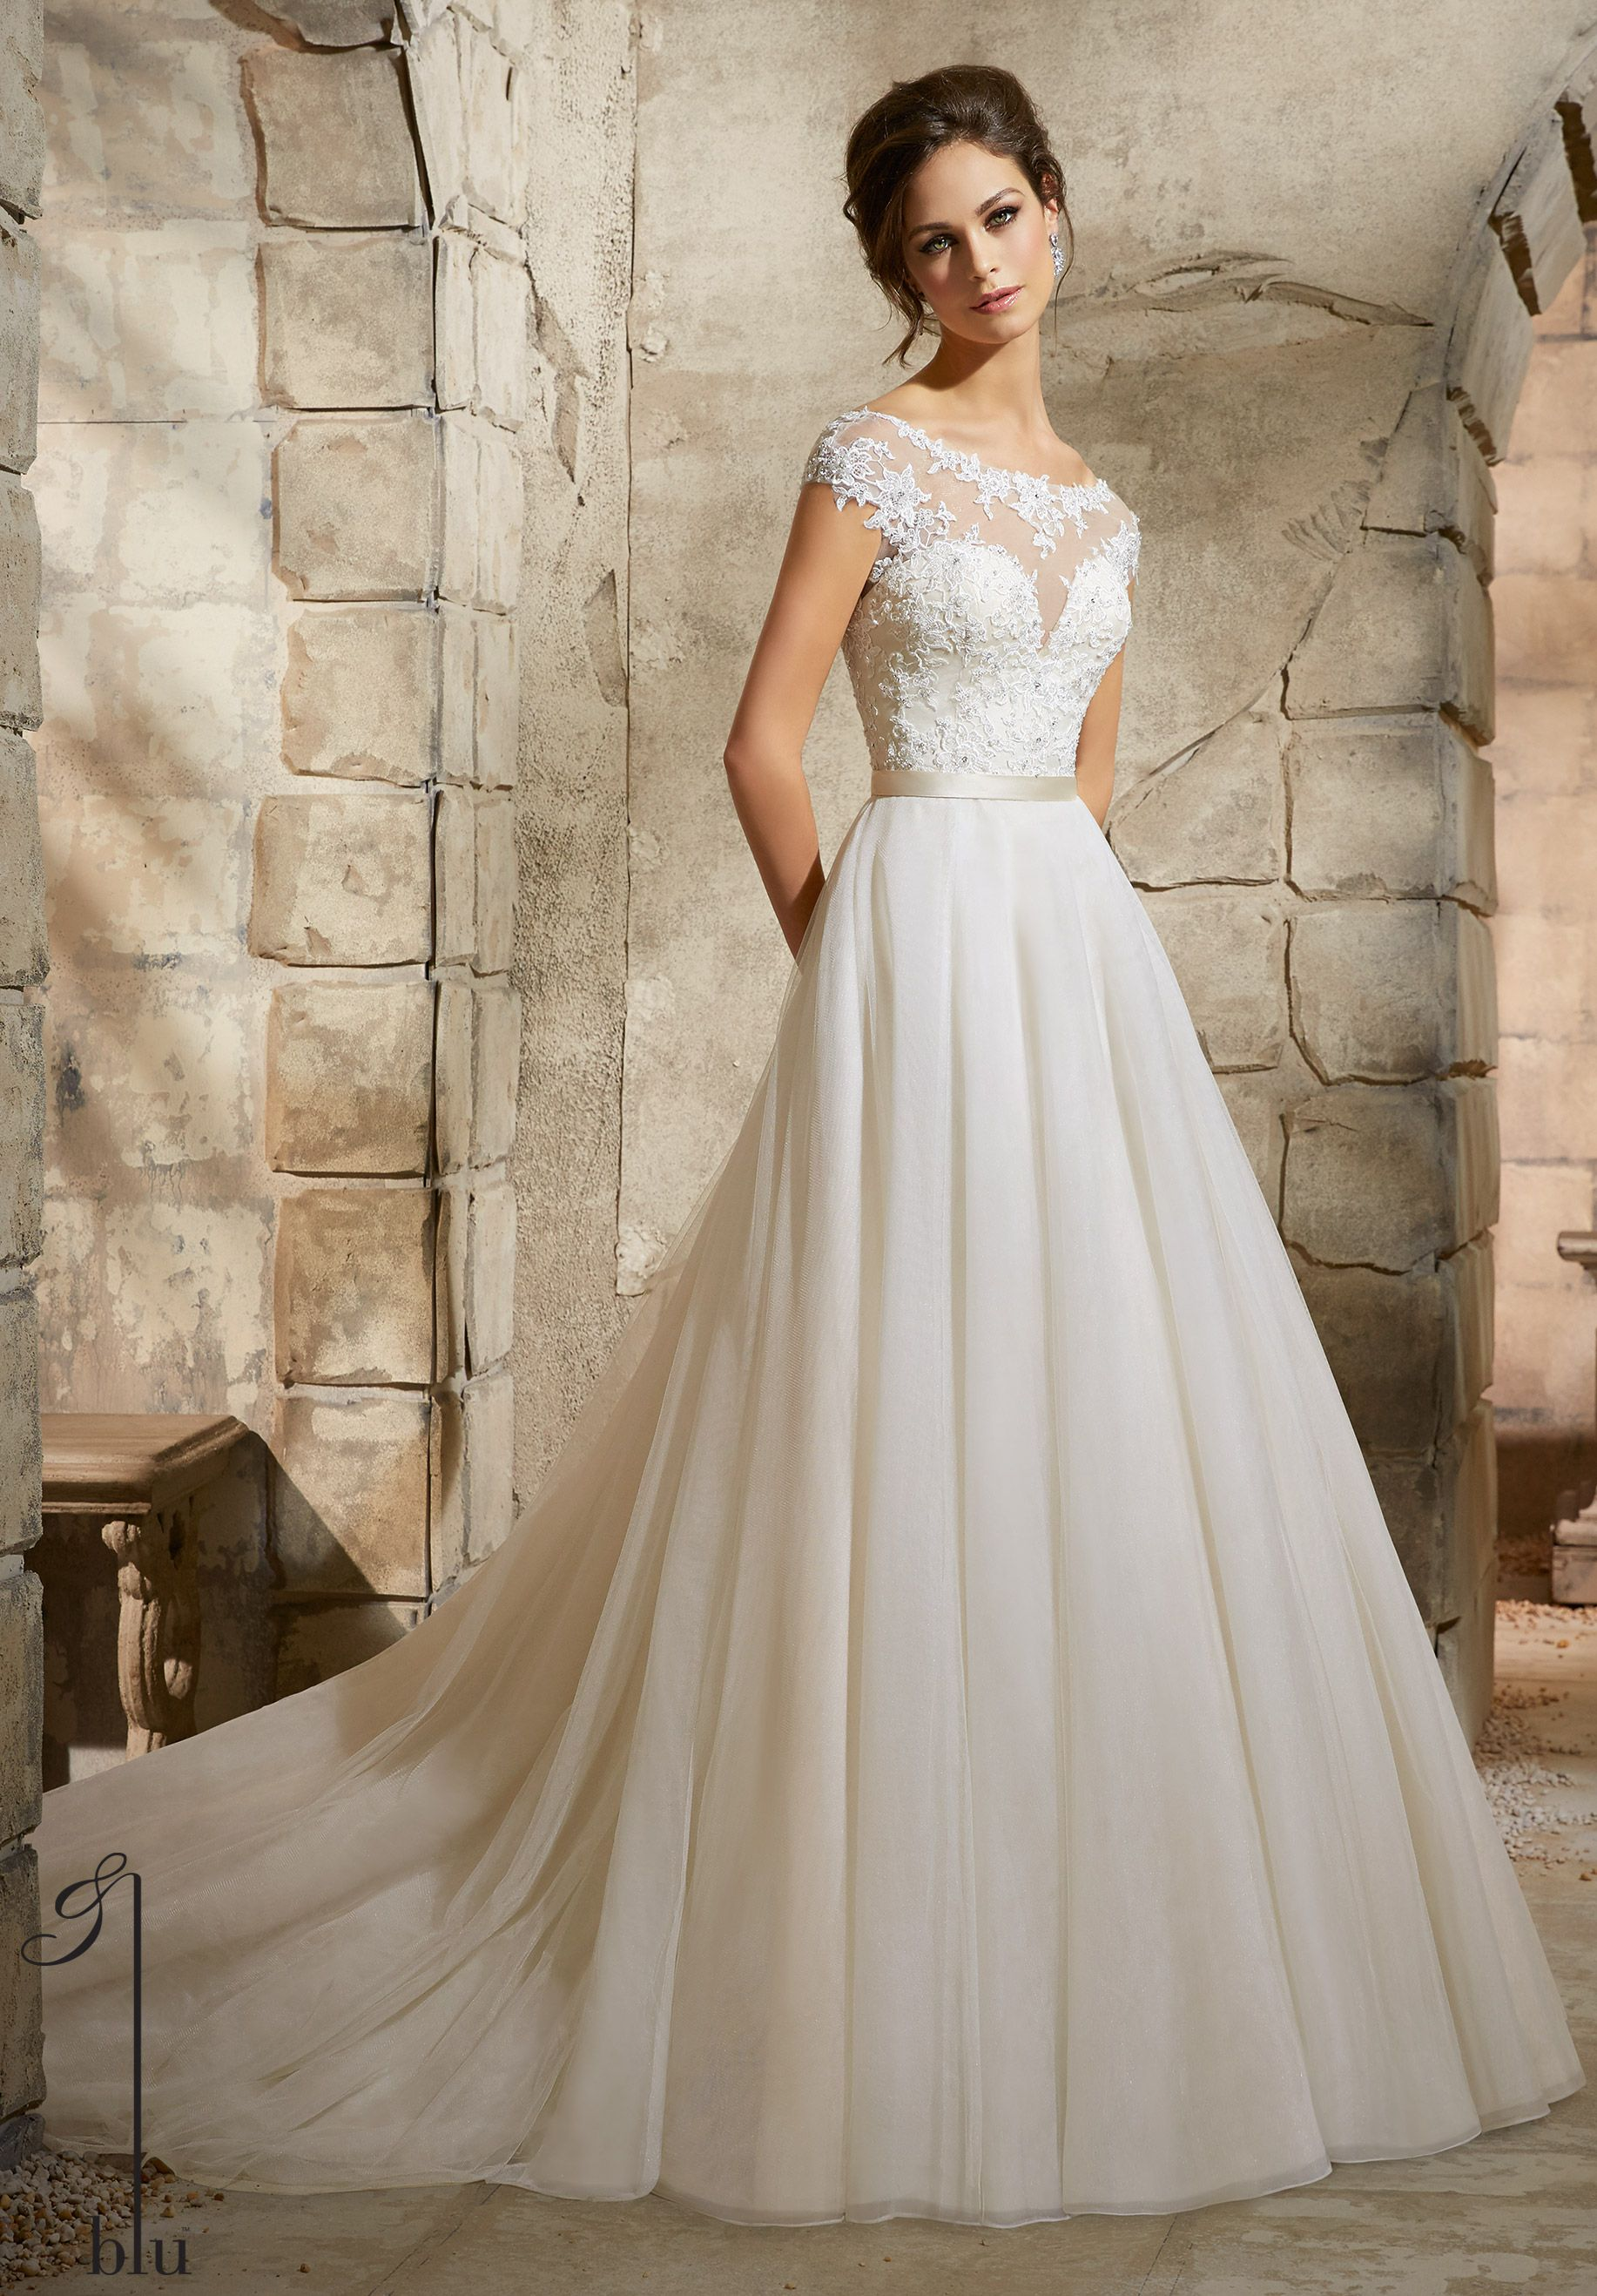 Wedding Gowns By Blu featuring Embroidered Appliques with Crystal ...